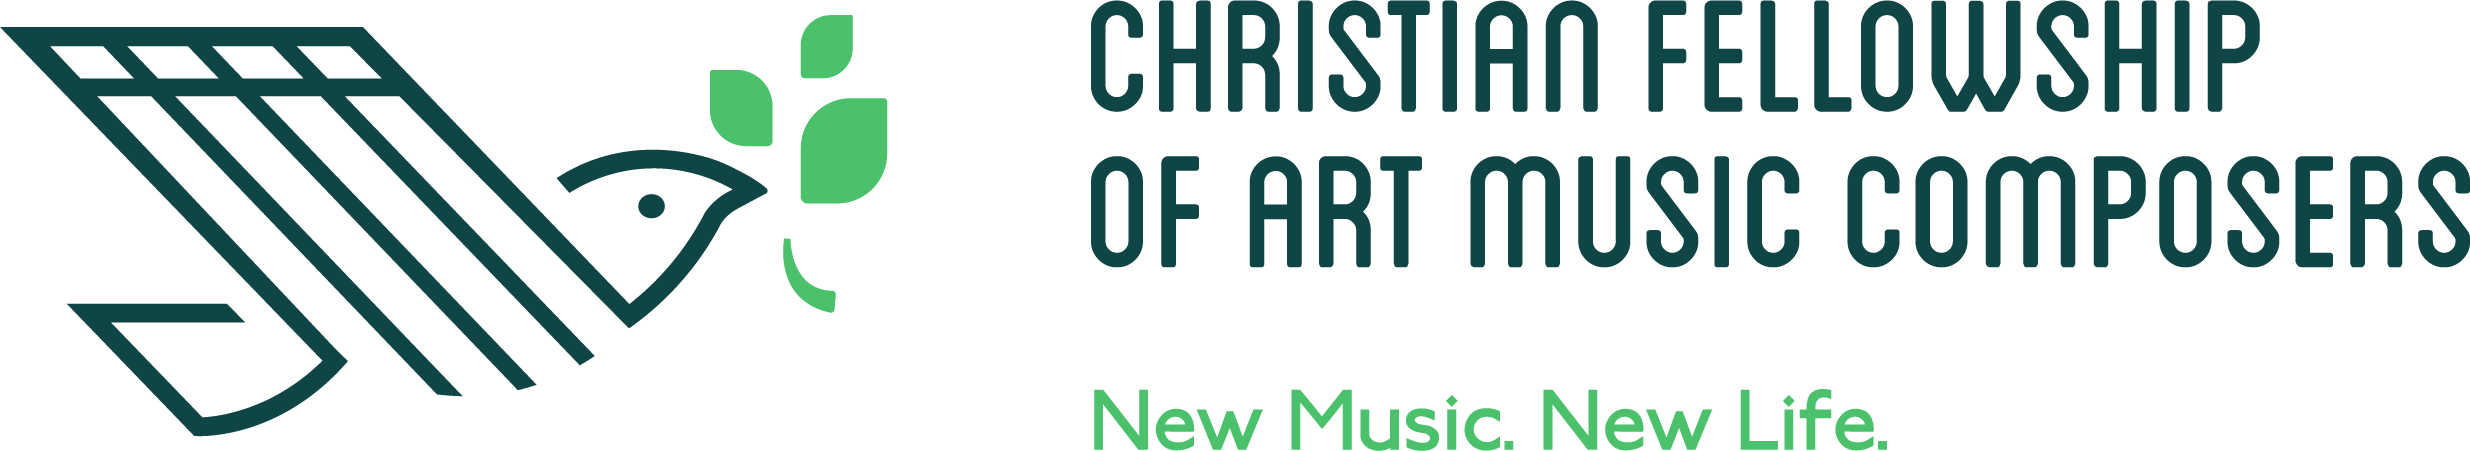 The Christian Fellowship of Art Music Composers